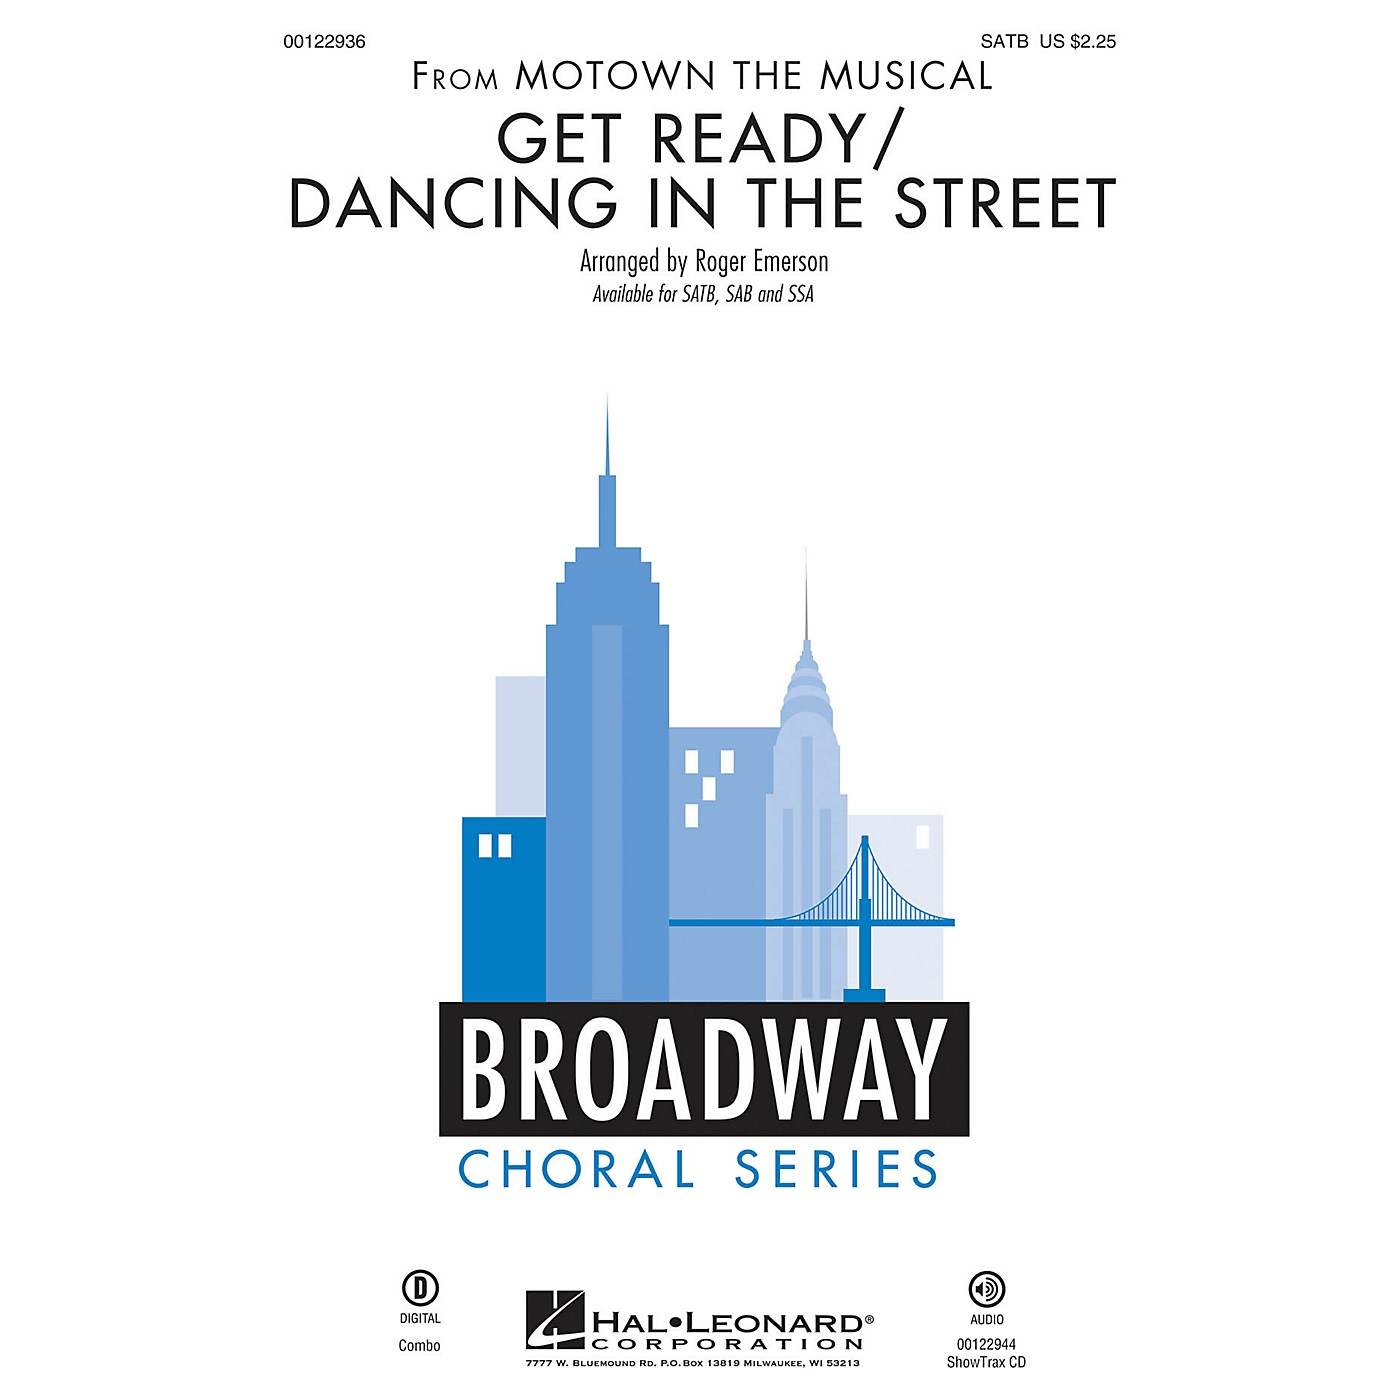 Hal Leonard Get Ready/Dancing in the Street (from Motown: The Musical) SATB arranged by Roger Emerson thumbnail